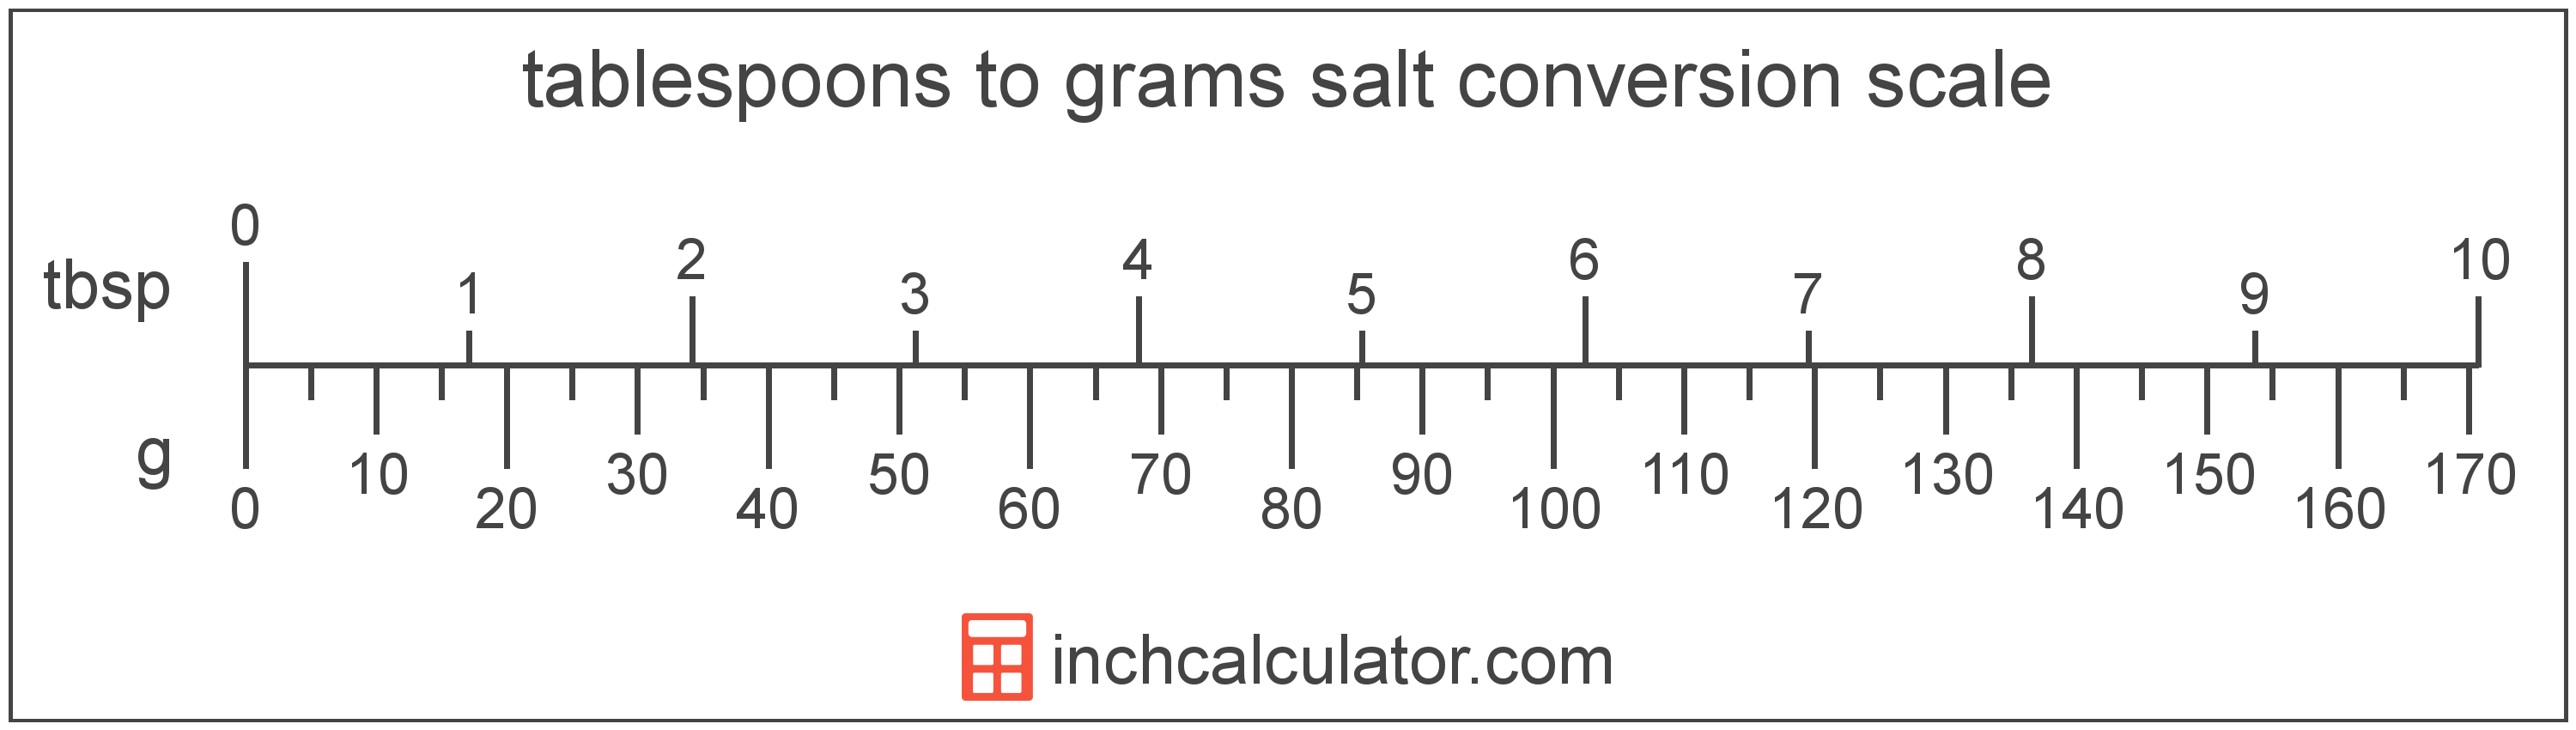 conversion scale showing tablespoons and equivalent grams salt volume values